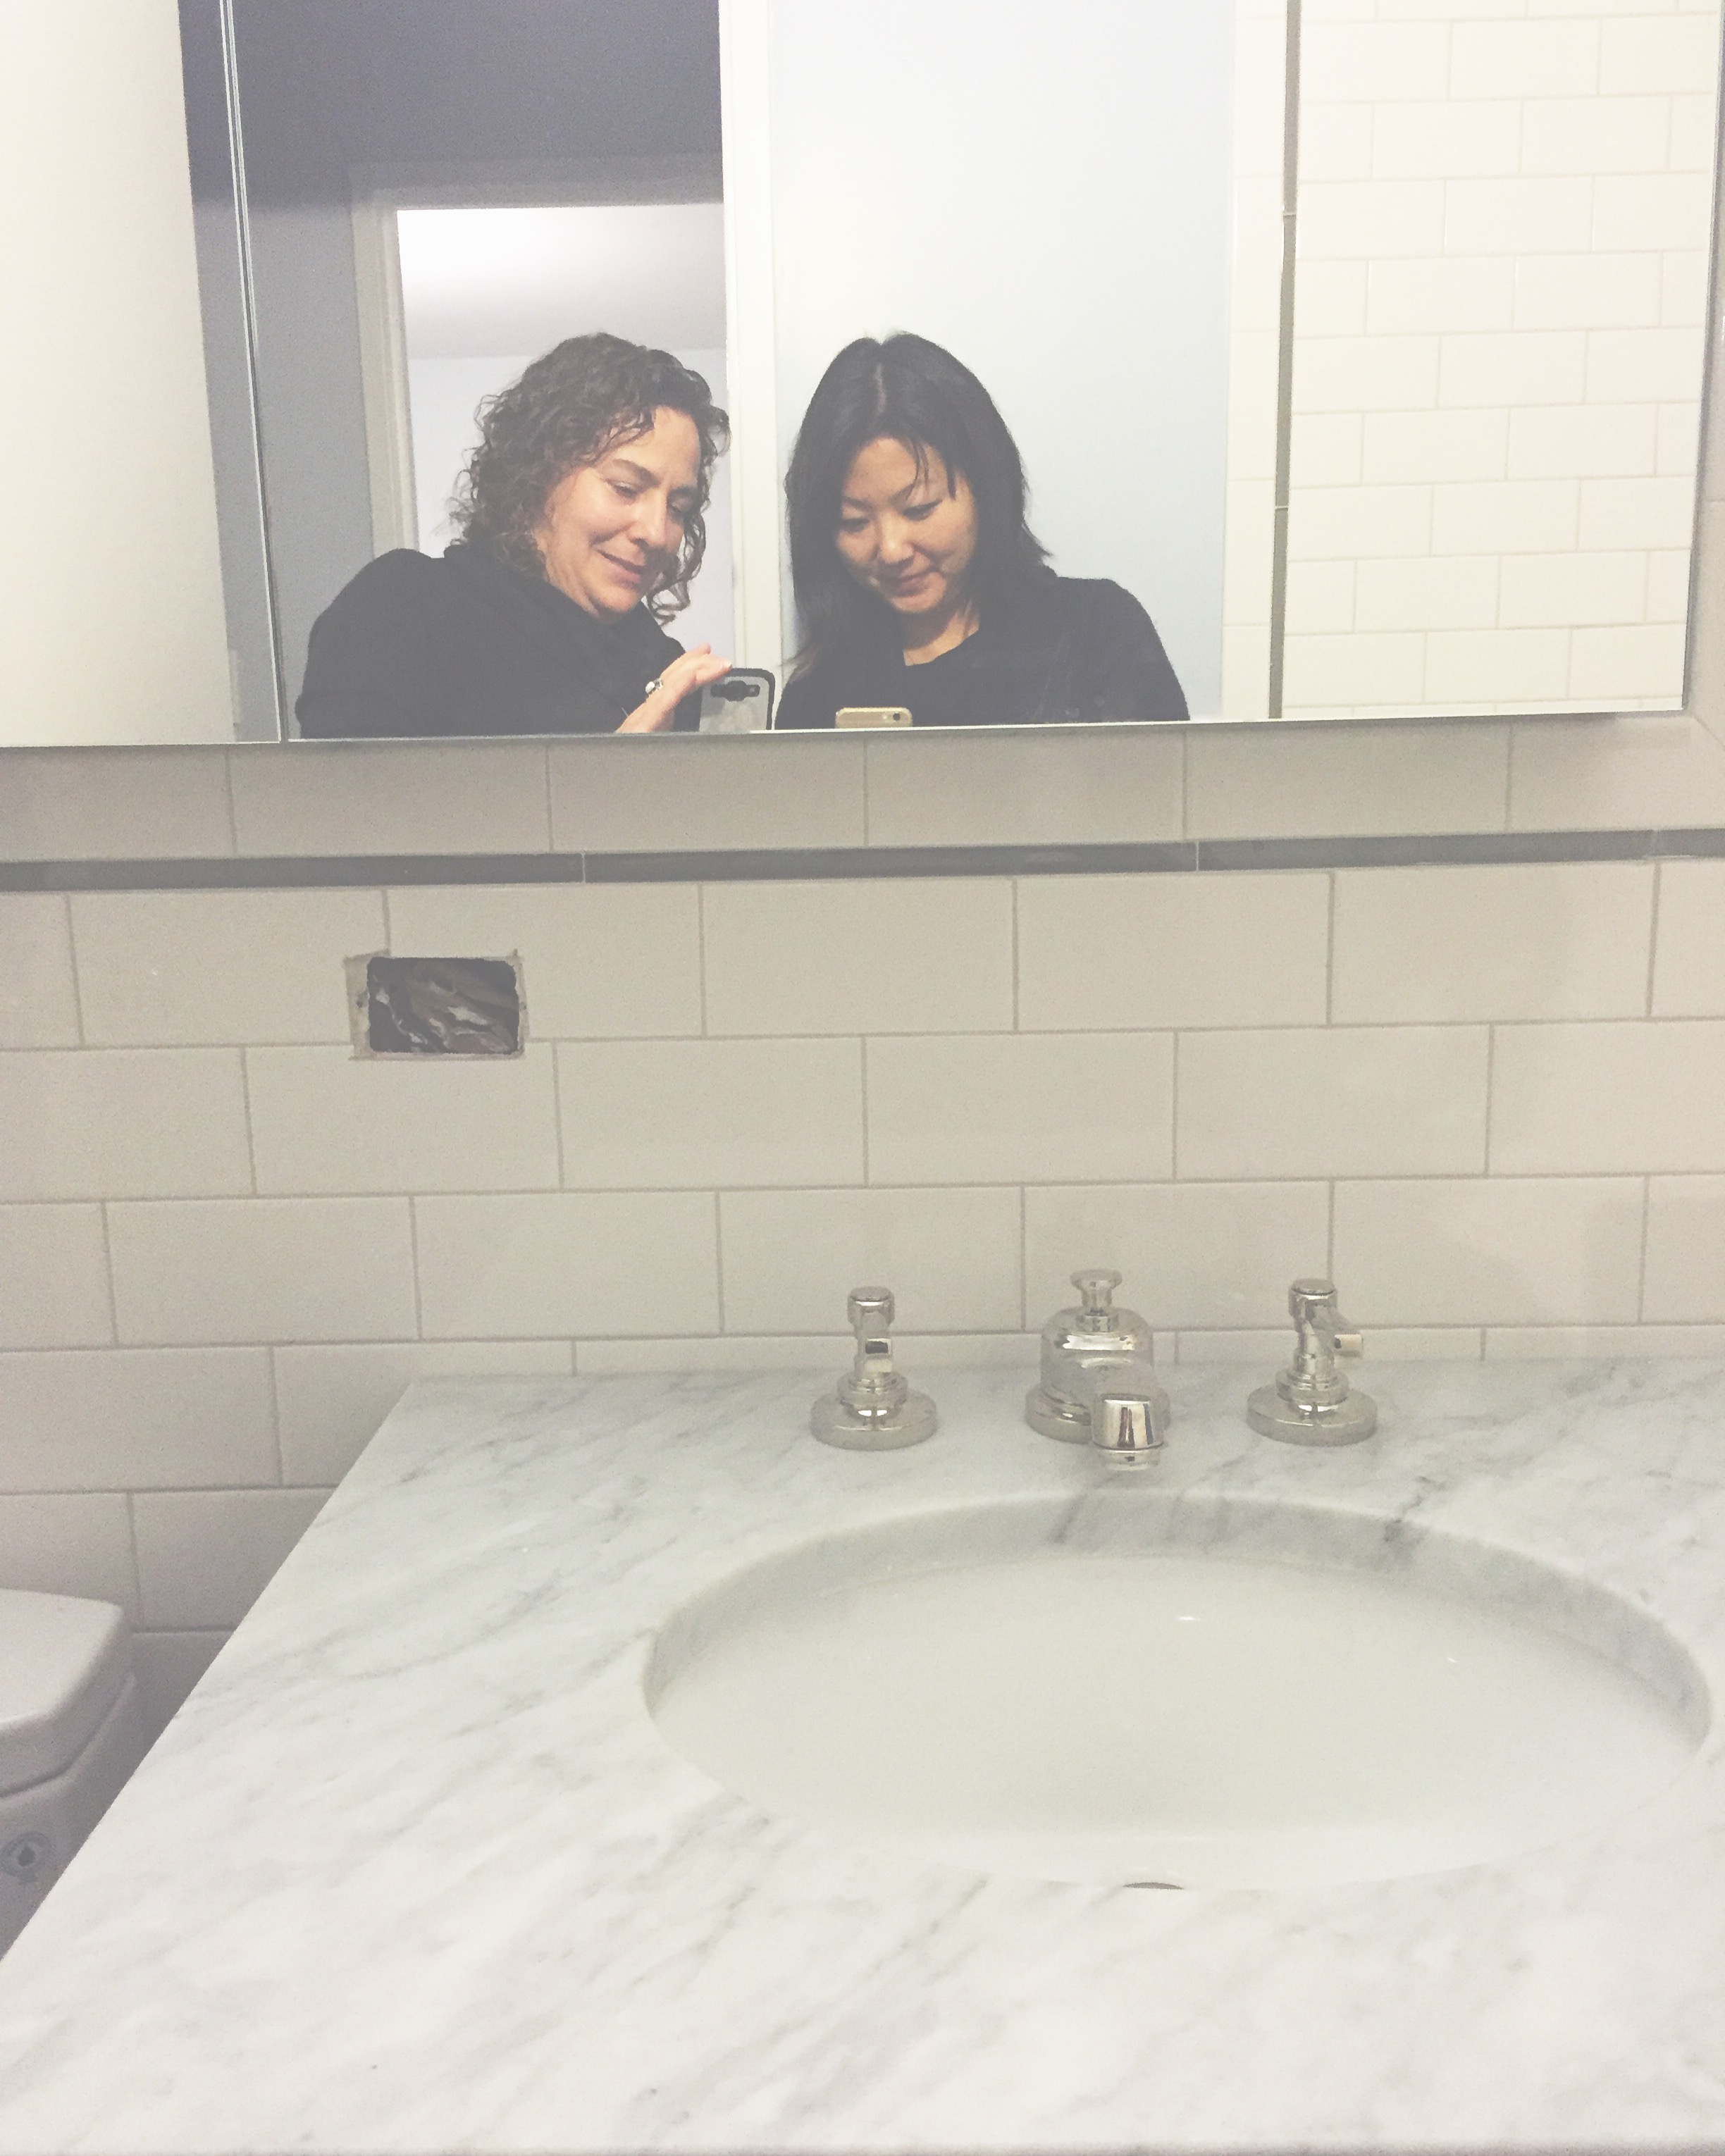 Checking out client's new bathroom! #lovemywork  #design